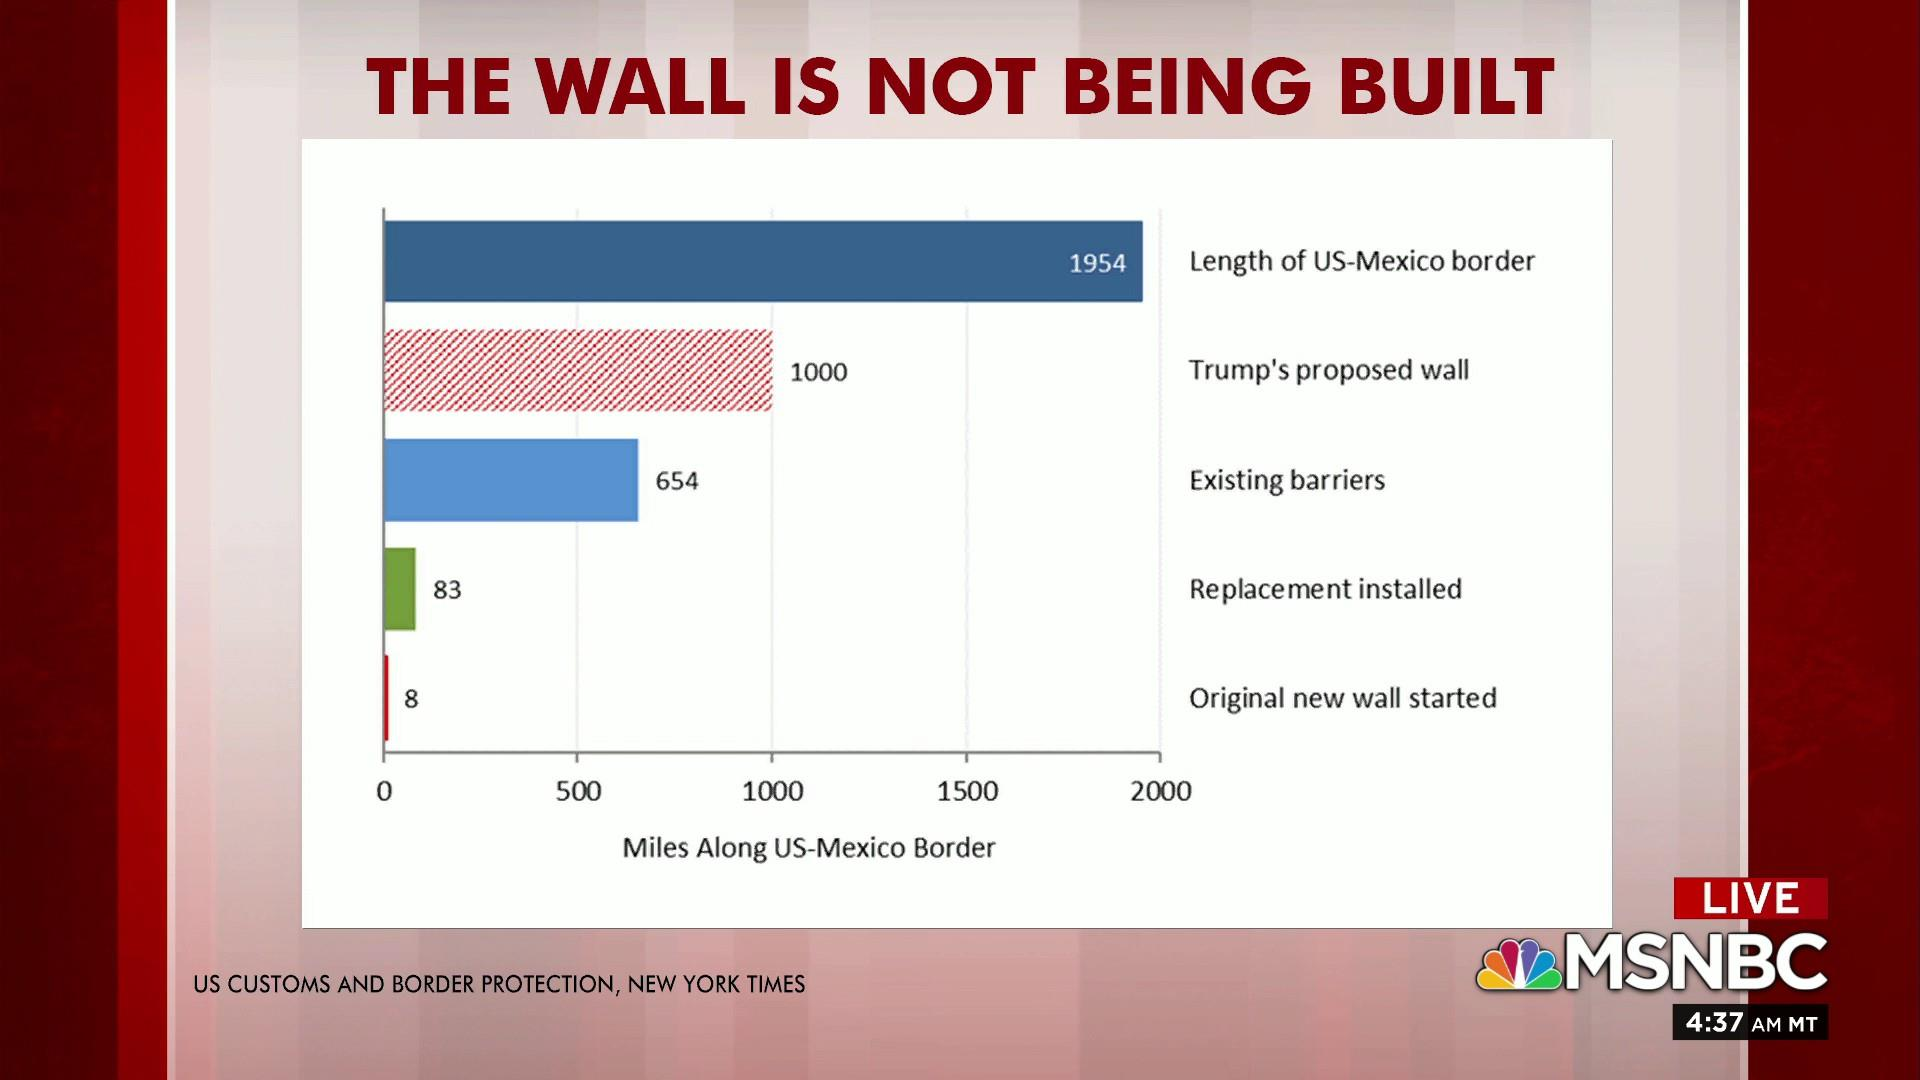 Steve Rattner: Little has changed with border wall